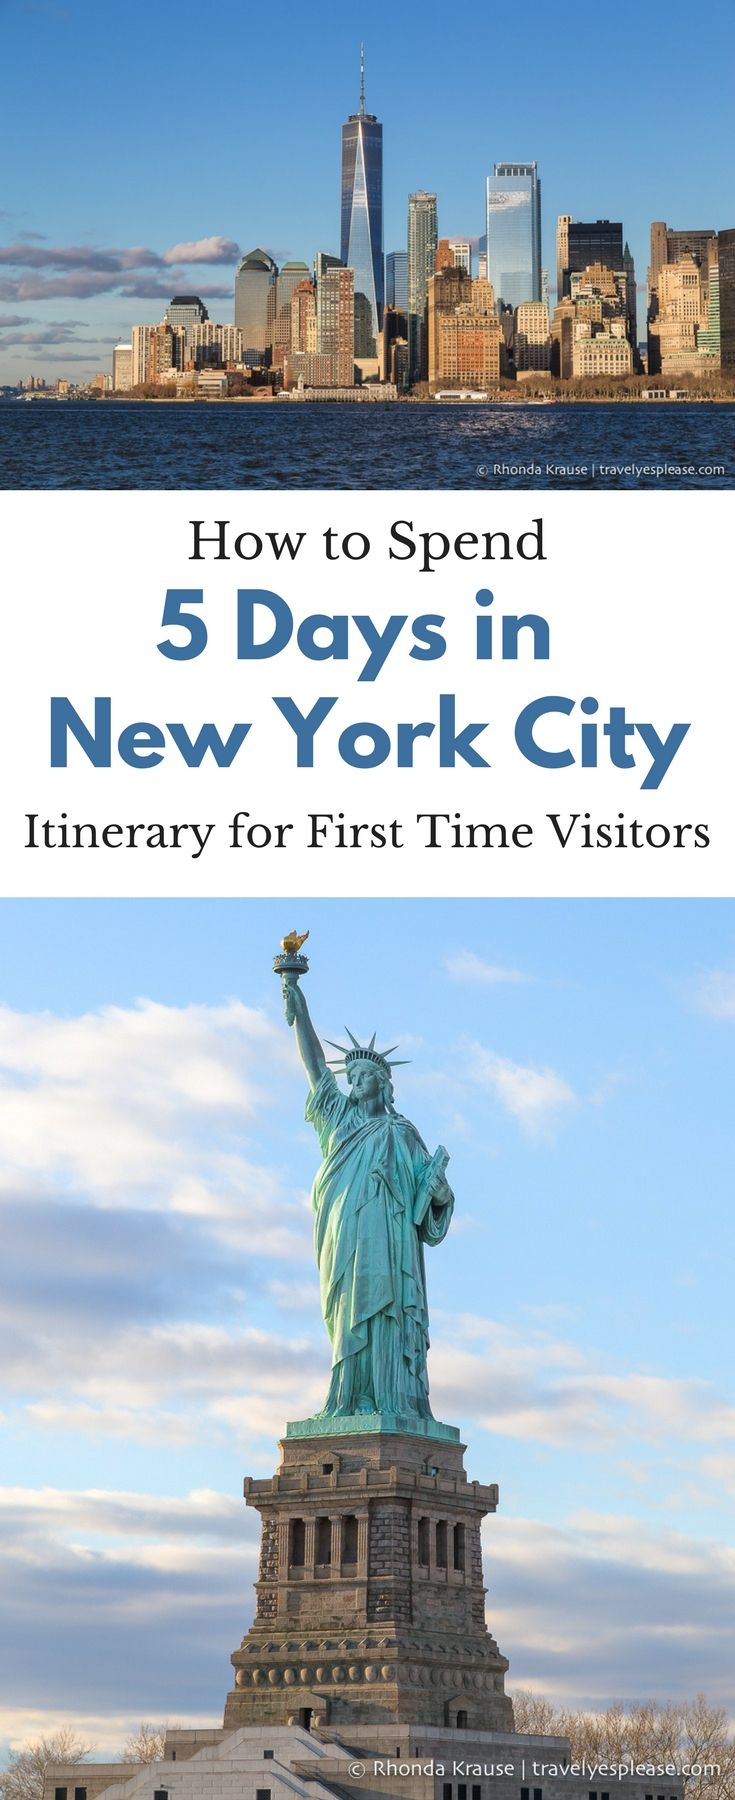 How to Spend 5 Days in New York City- Itinerary for First Time Visitors (Blog post, travelyesplease.com) | #NewYork #NewYorkCity #UnitedStates #NorthAmerica